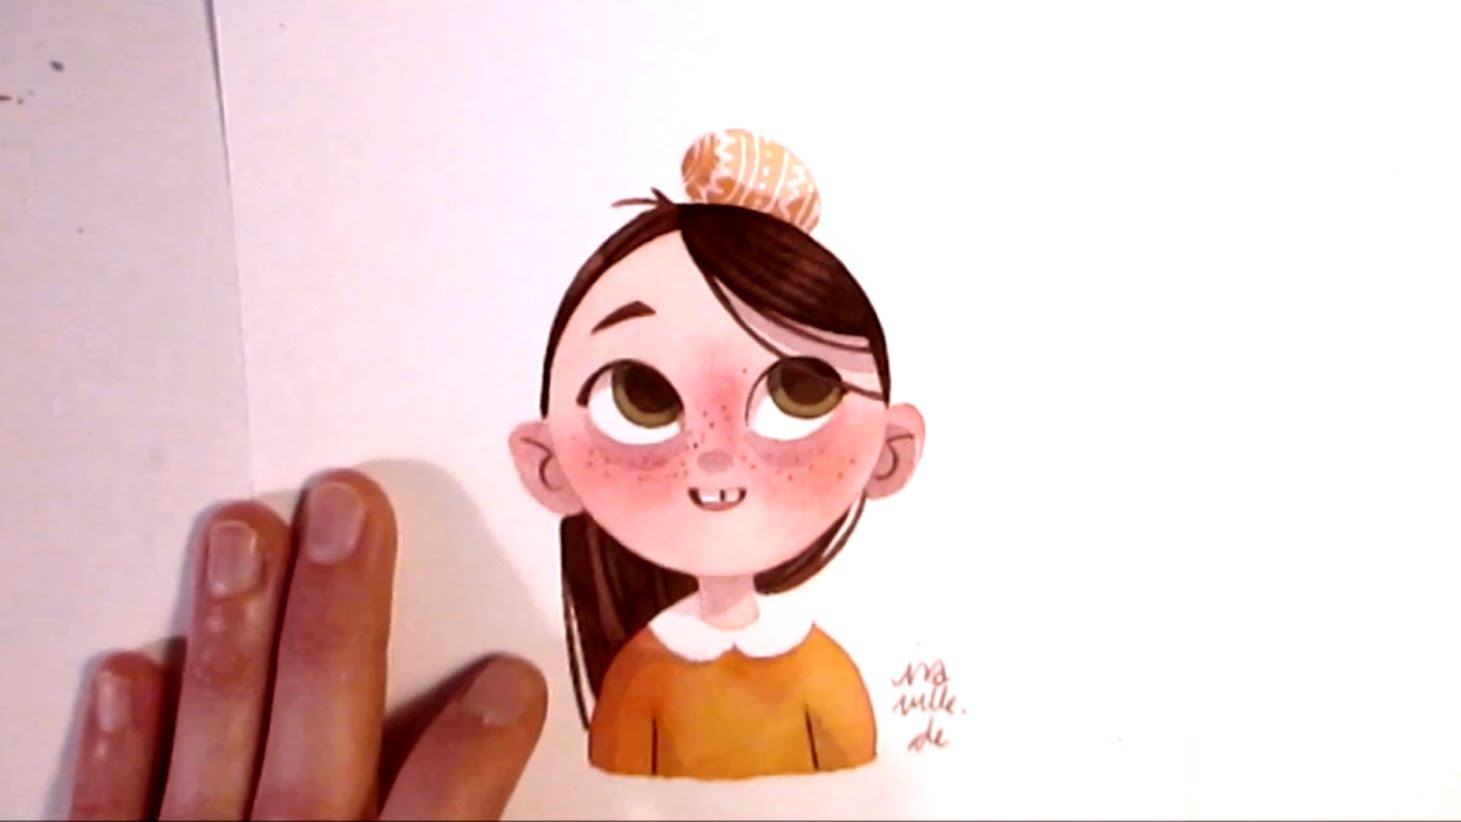 1461x822 Character Watercolor Illustration Experimenting With Simple Shapes